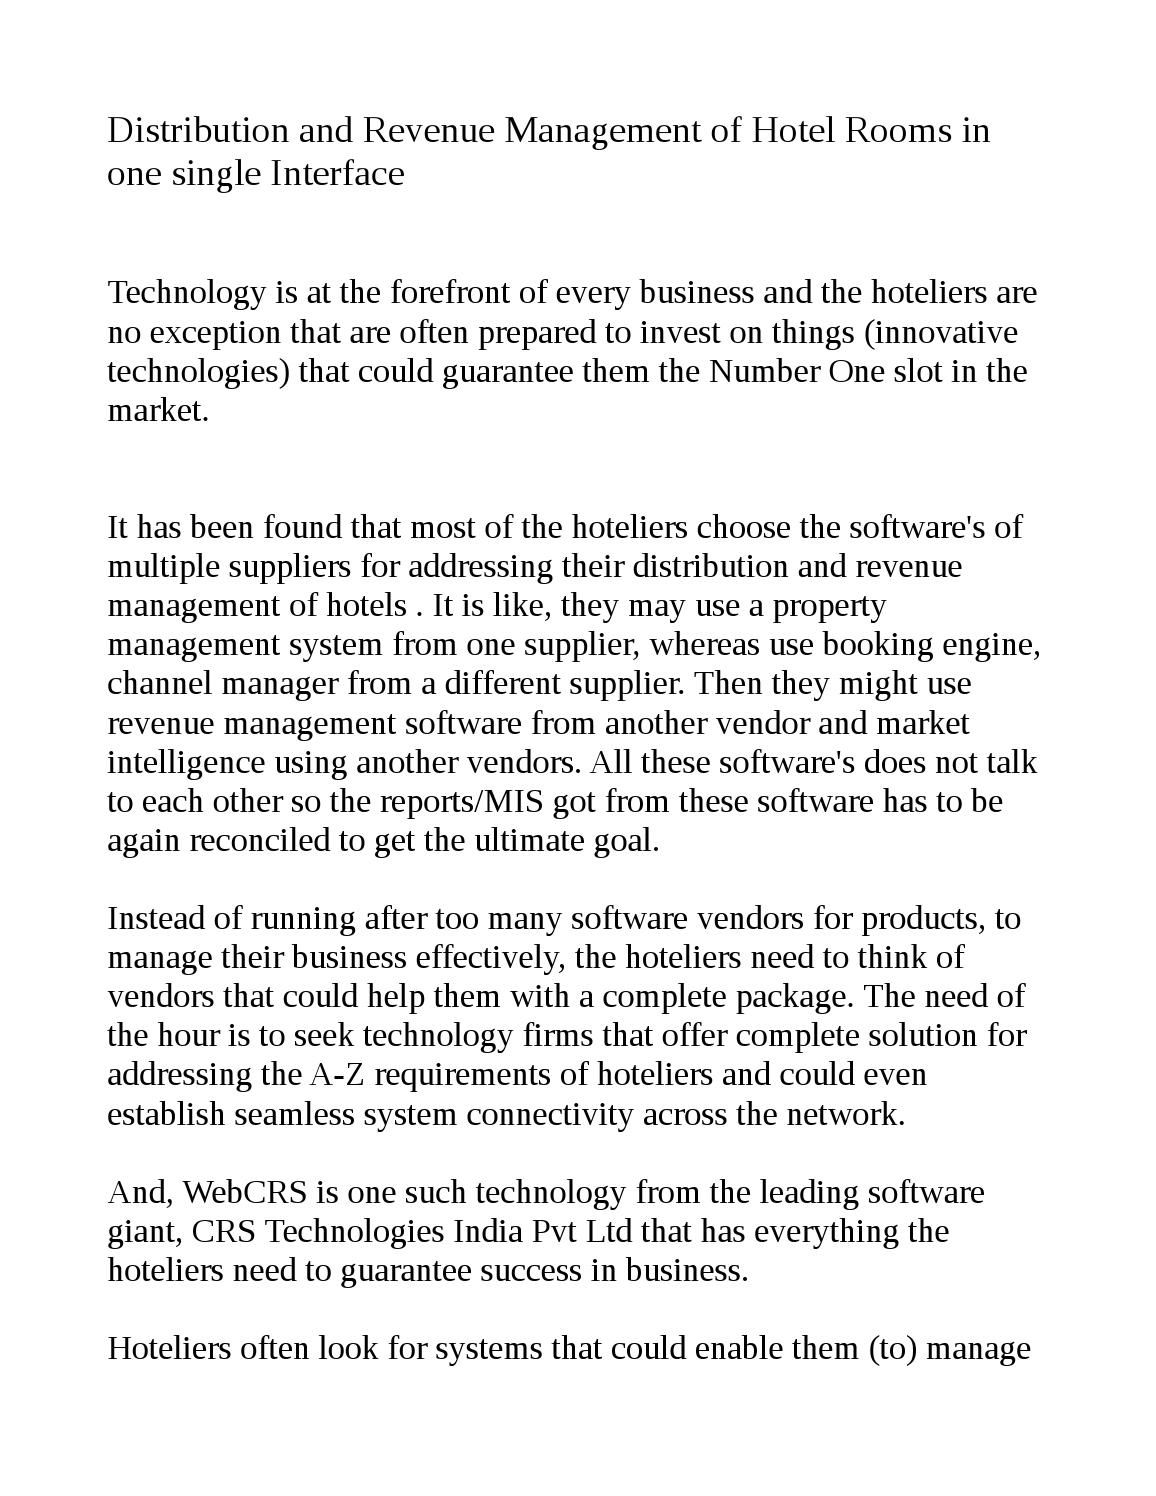 WebCRS a technology from CRS Technologies Revenue